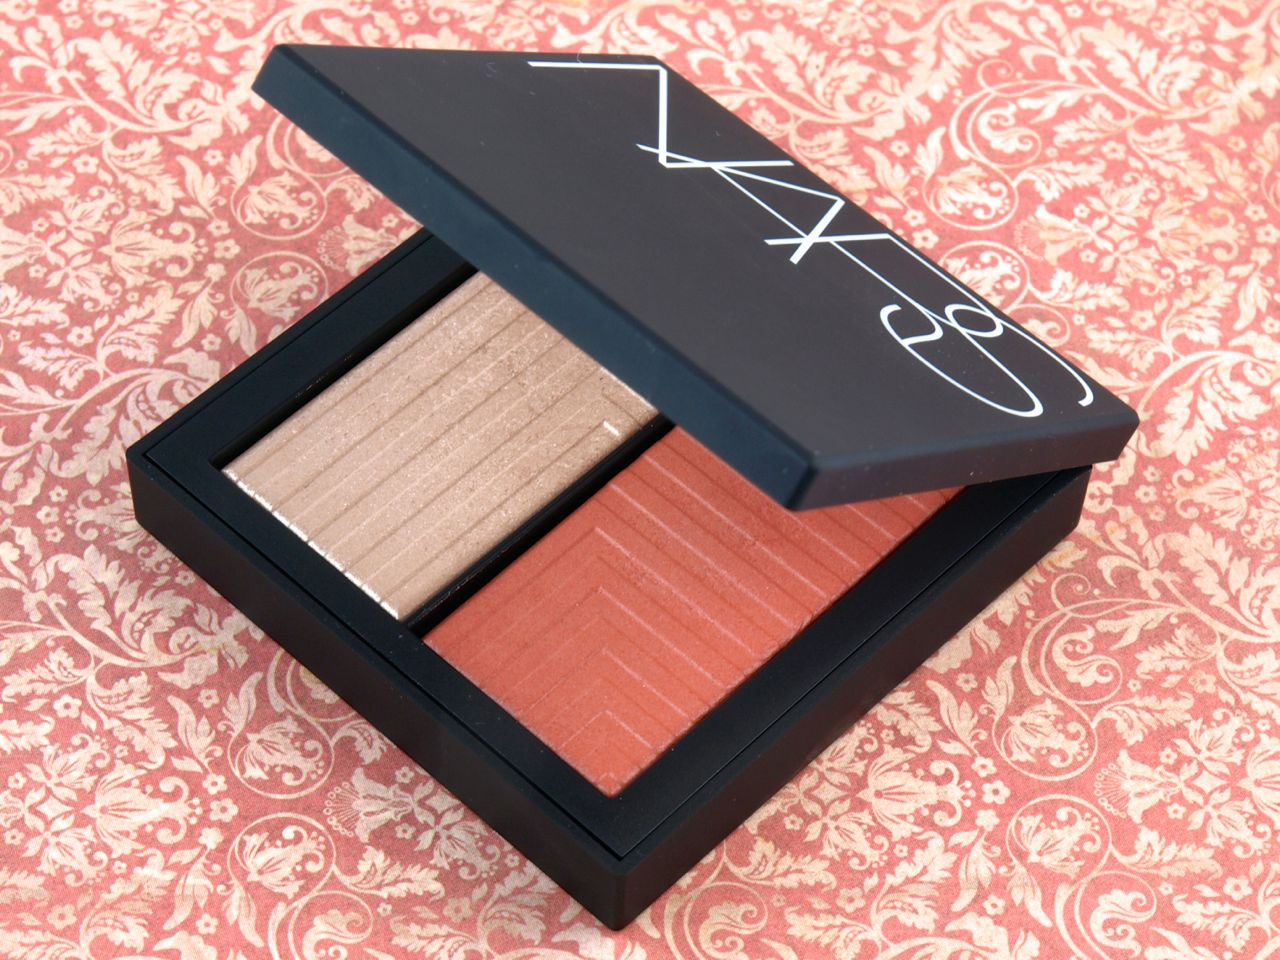 nars duo intensity blush in frenzy review and swatches the happy sloths beauty makeup. Black Bedroom Furniture Sets. Home Design Ideas